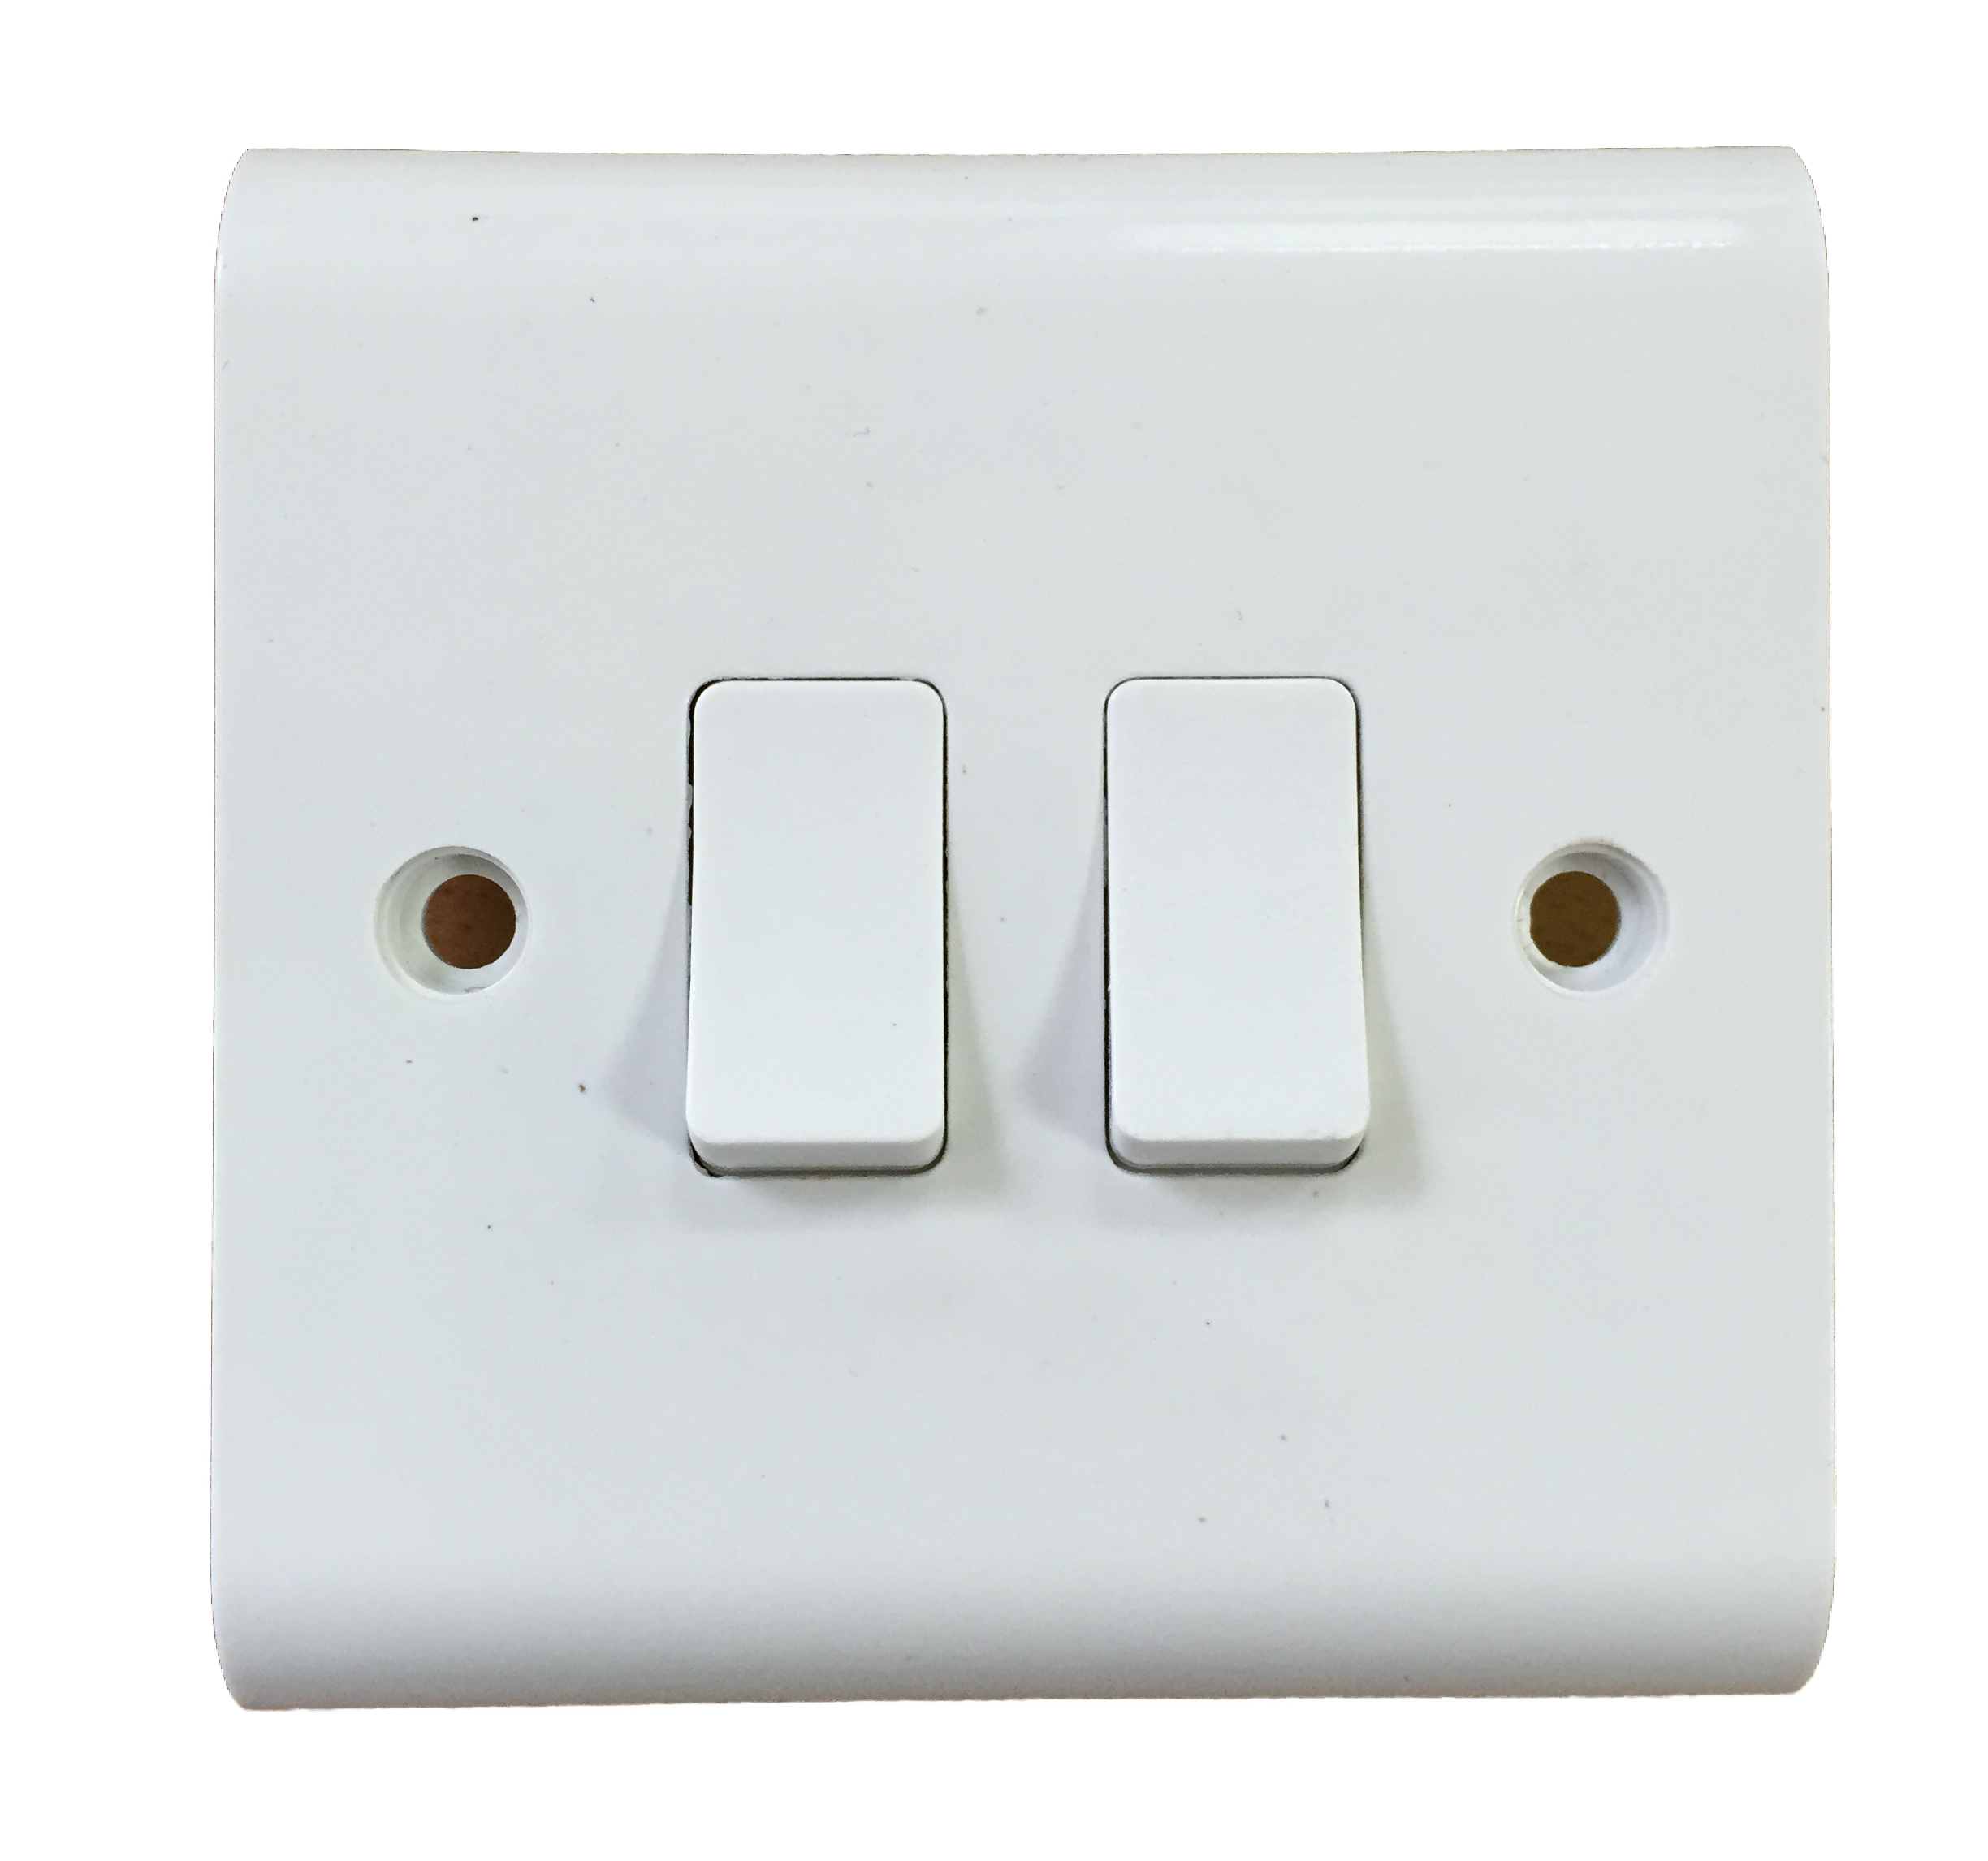 2 Gang Light Switch 1 Or Way White 10A Beveled SCREW COVER